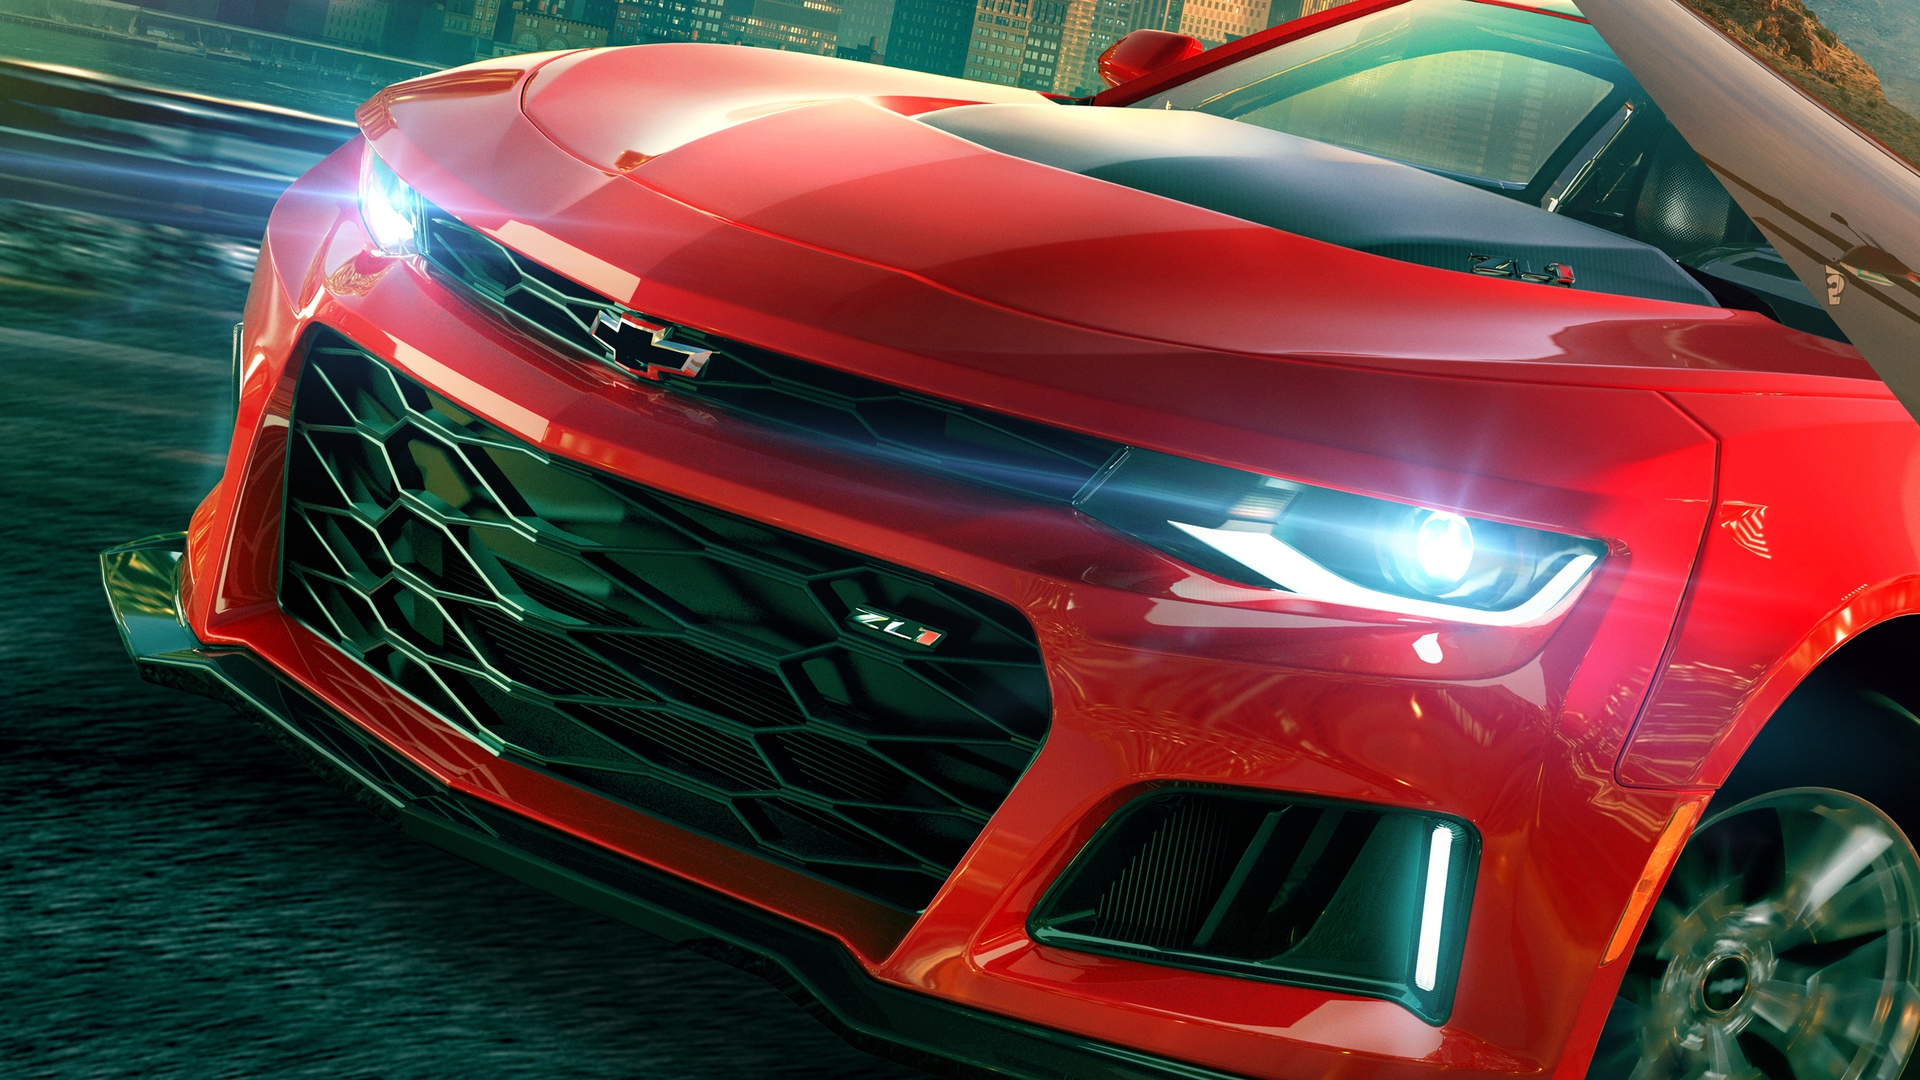 Download The Crew 2 Hd Wallpapers 1920x1080 Read Games